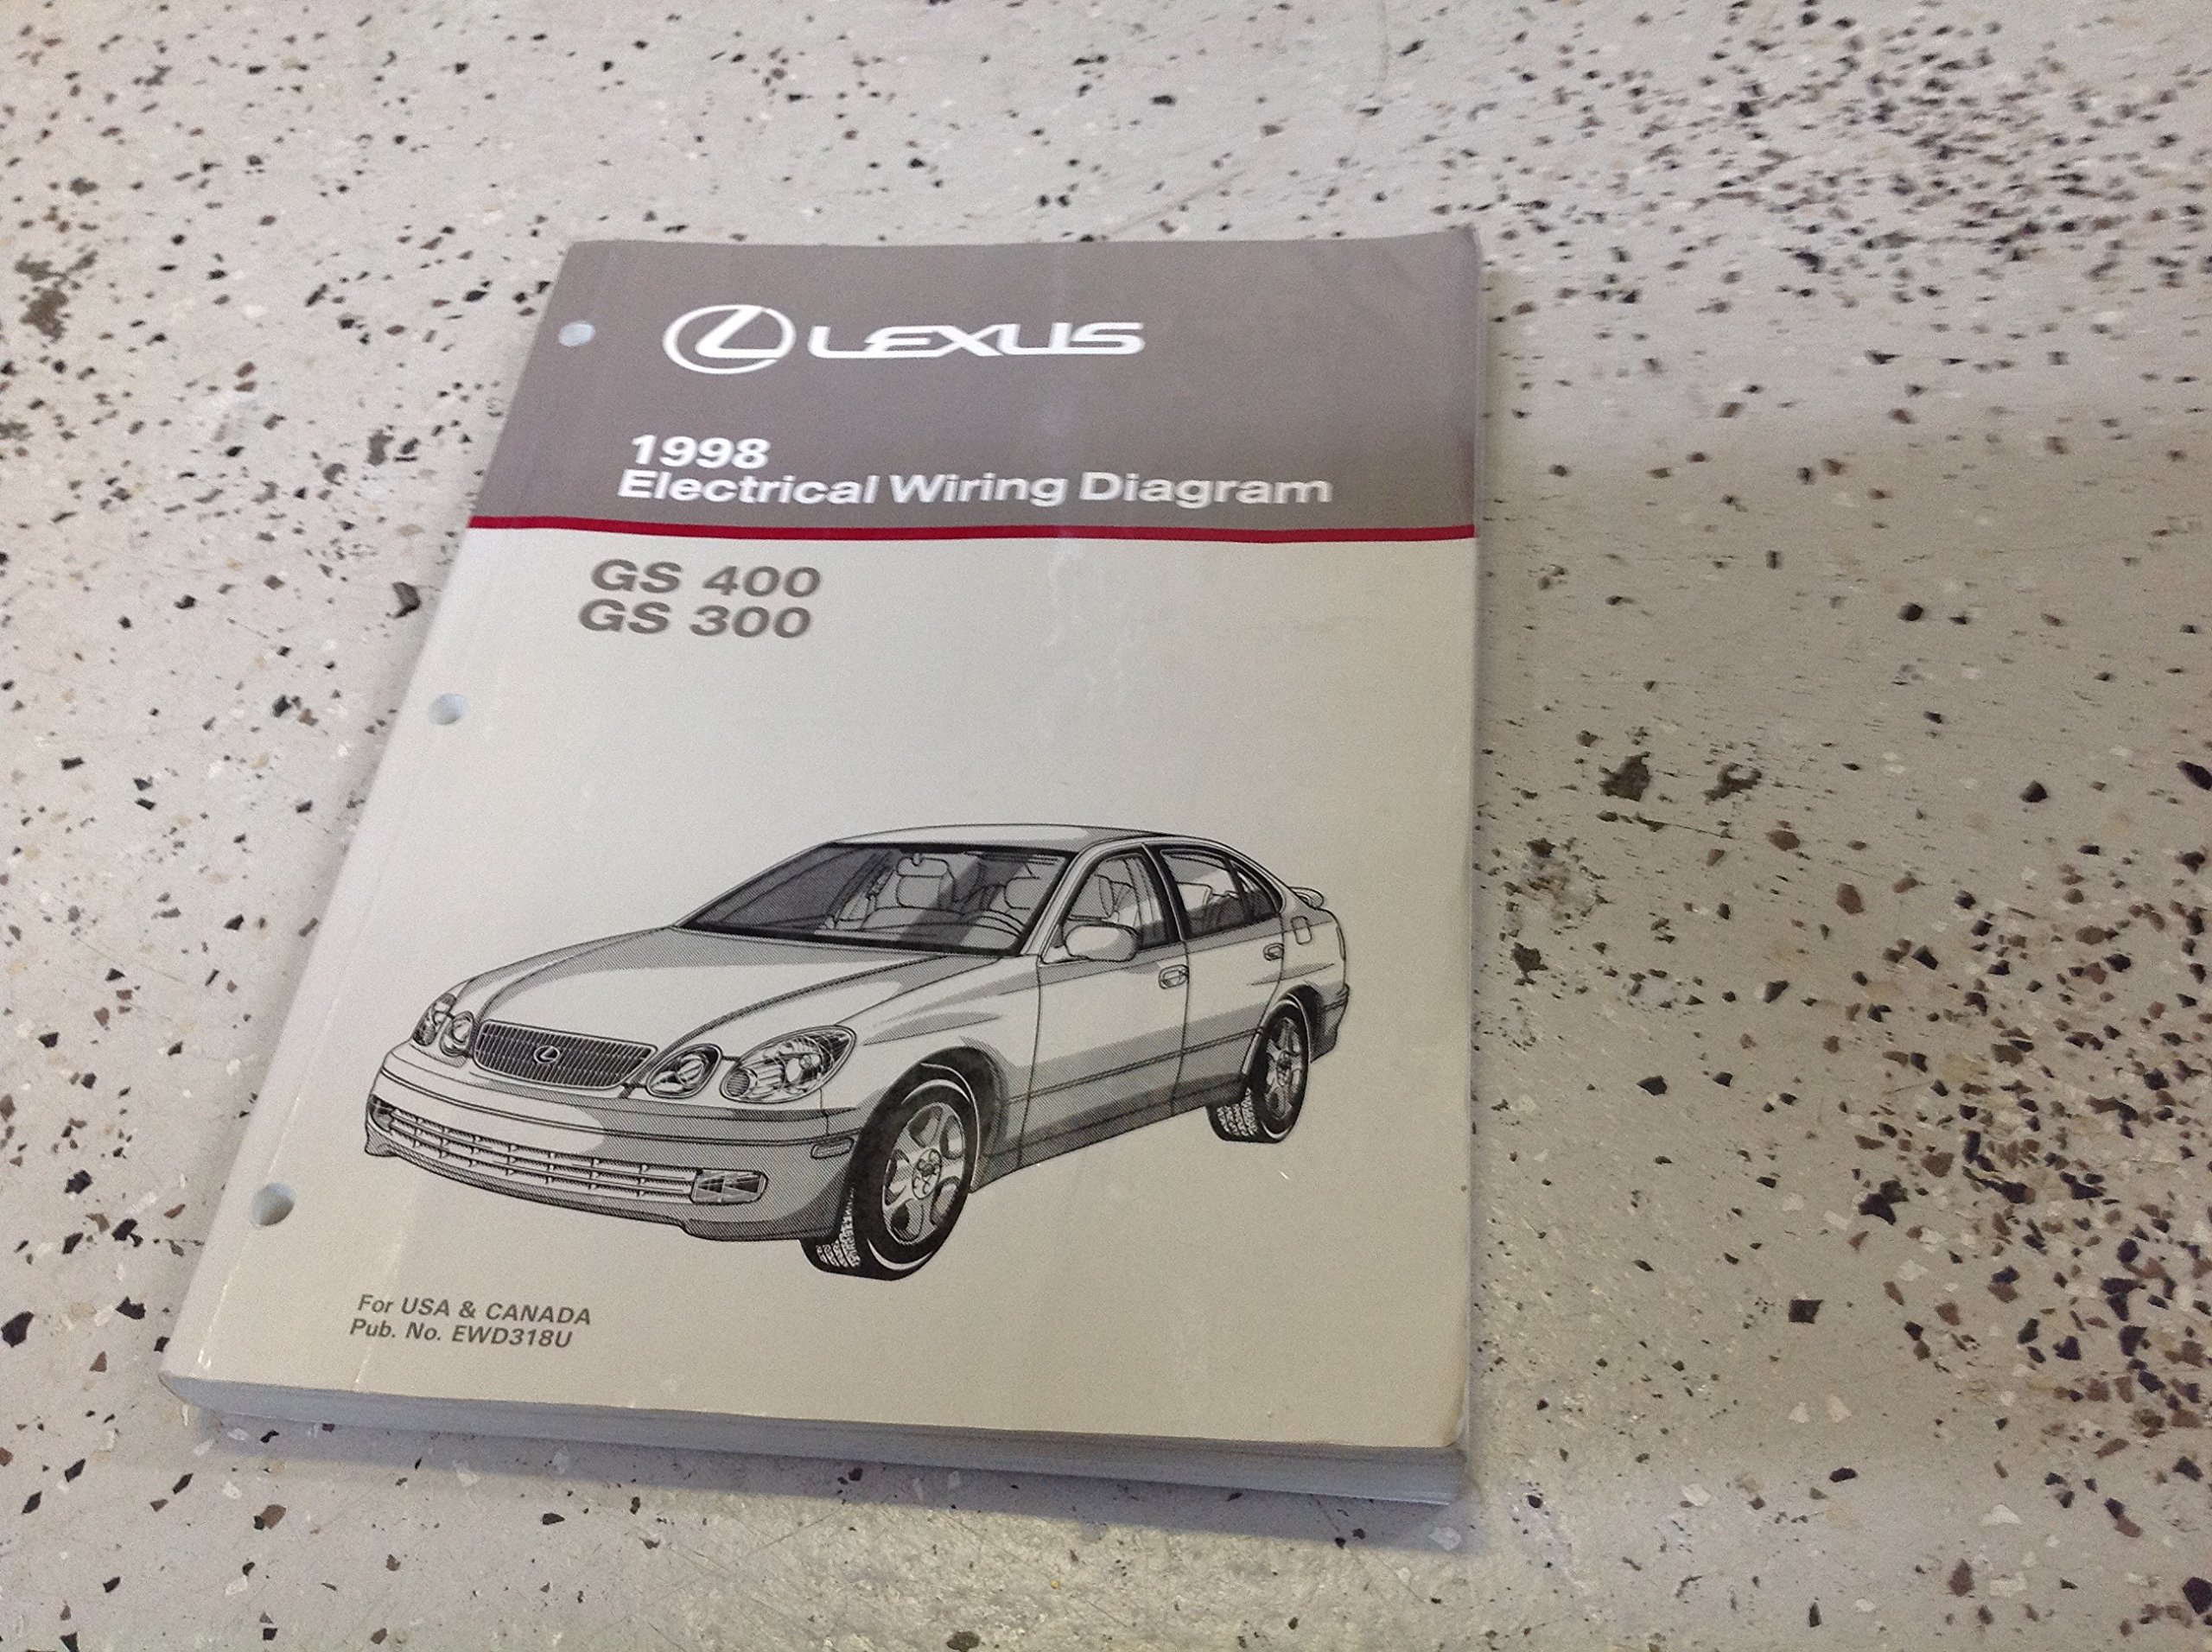 1998 lexus gs300 gs400 400 electrical wiring diagram service shop 1998 Lexus GS Ad